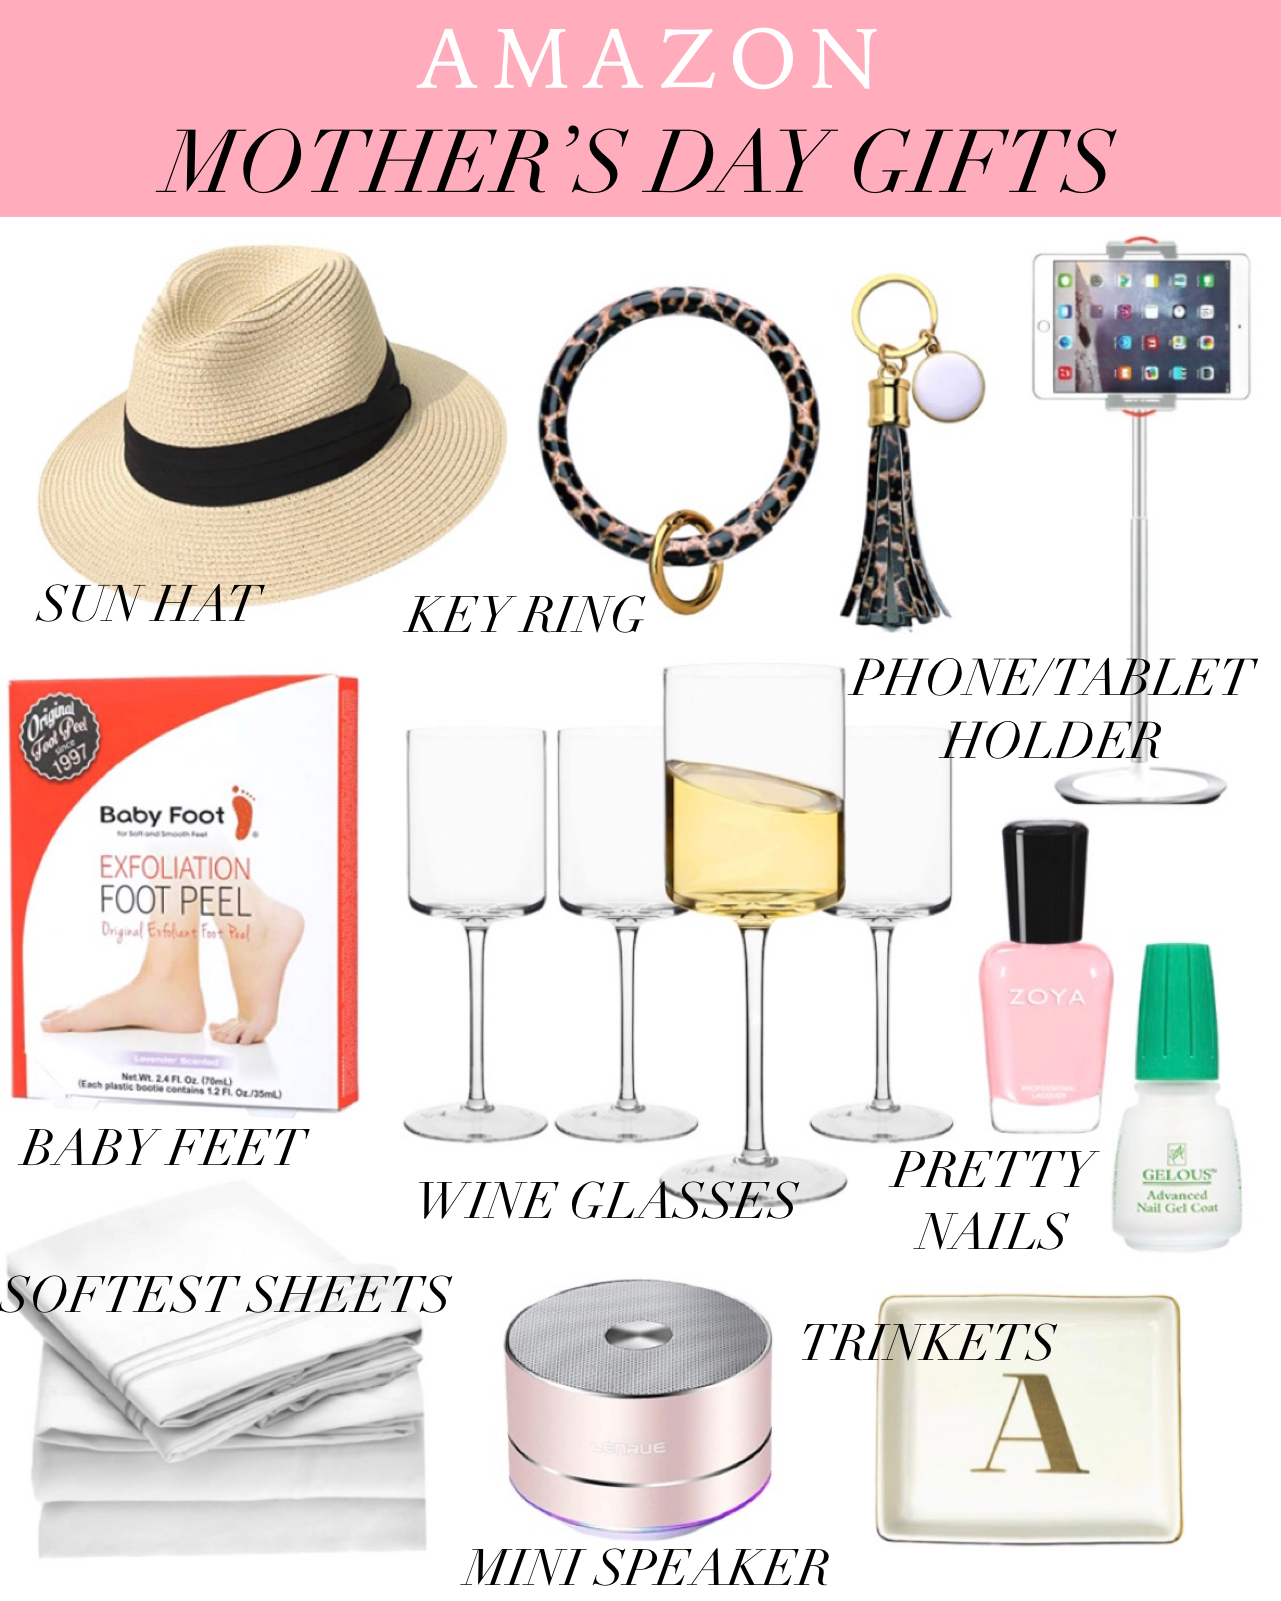 Mother's Day Gifts from Amazon